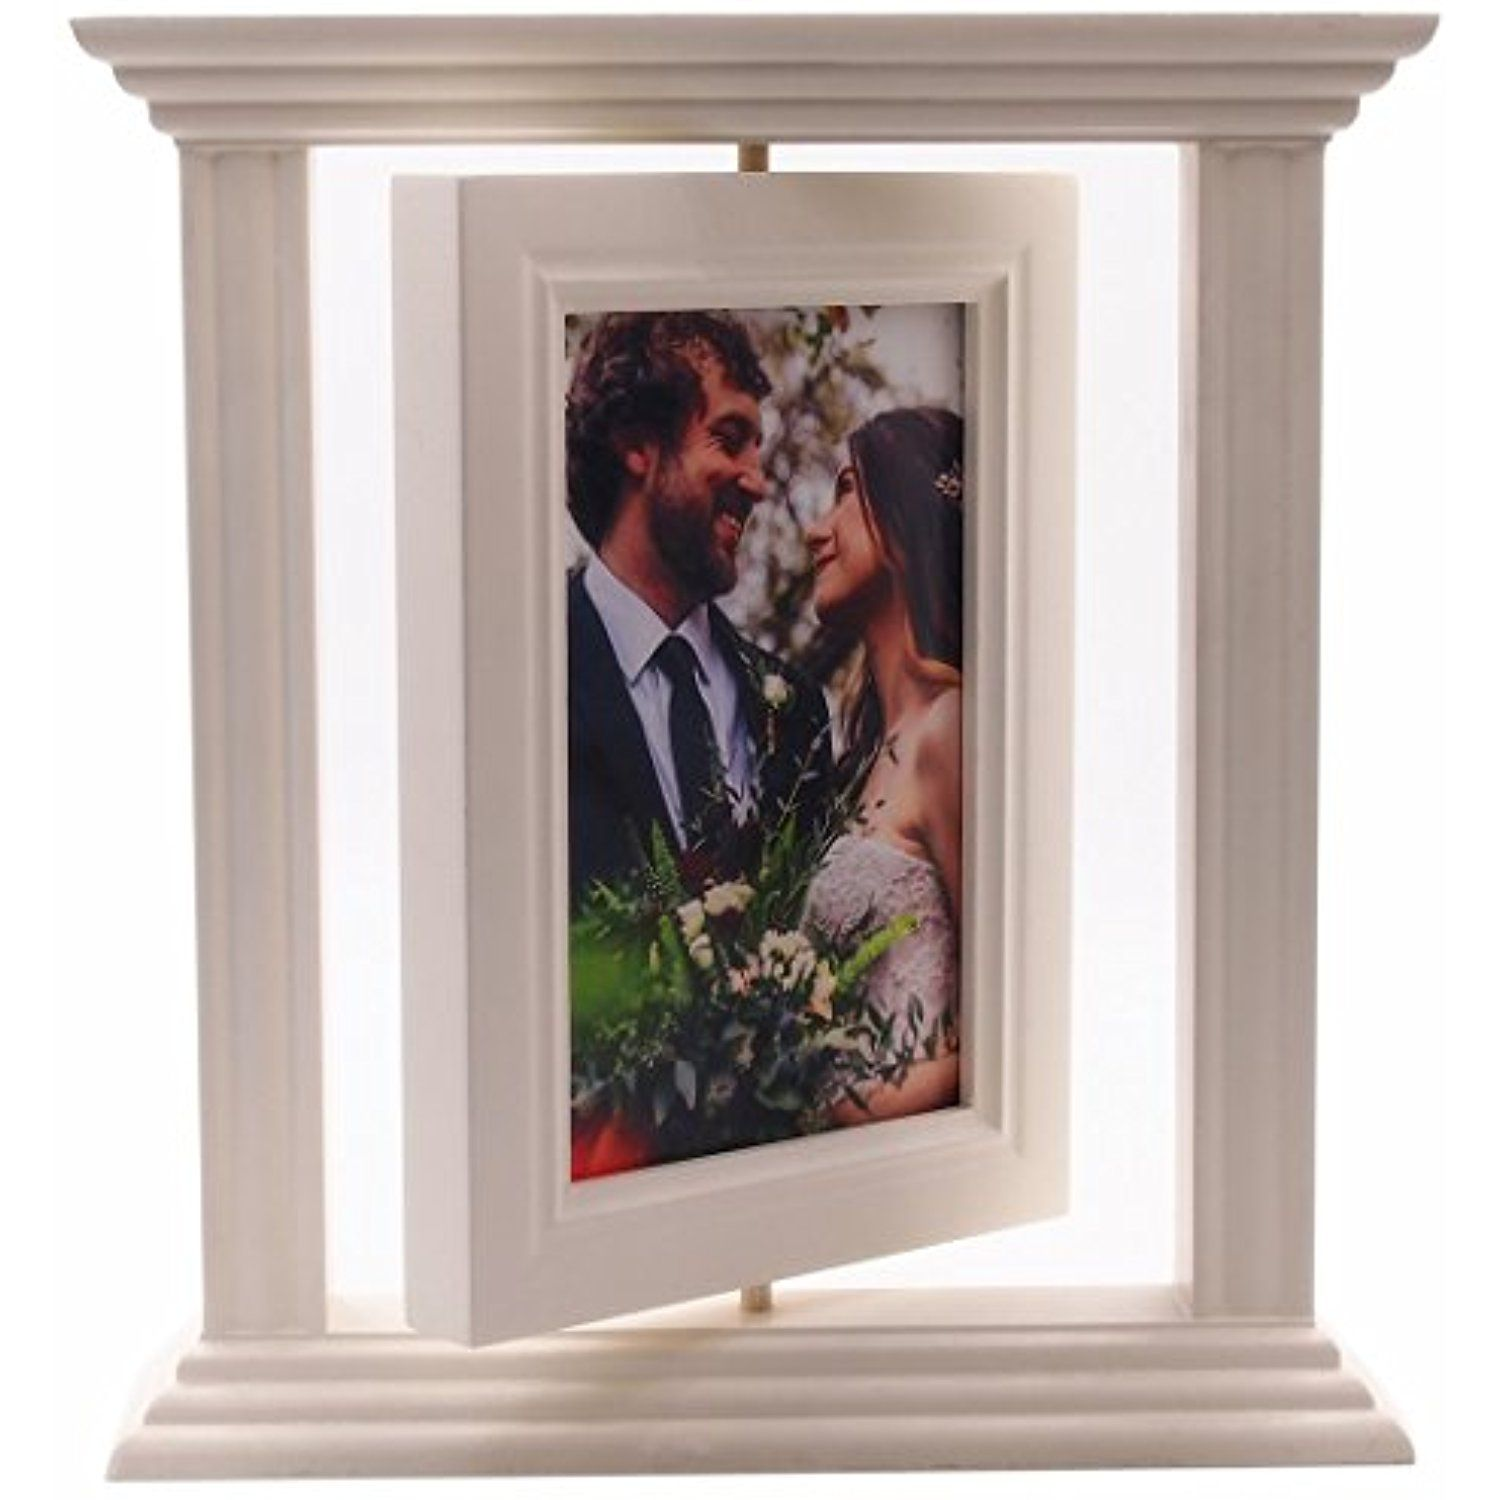 YoMee 2 Sided Rotatable White Picture Frame with Glass Front - Solid ...